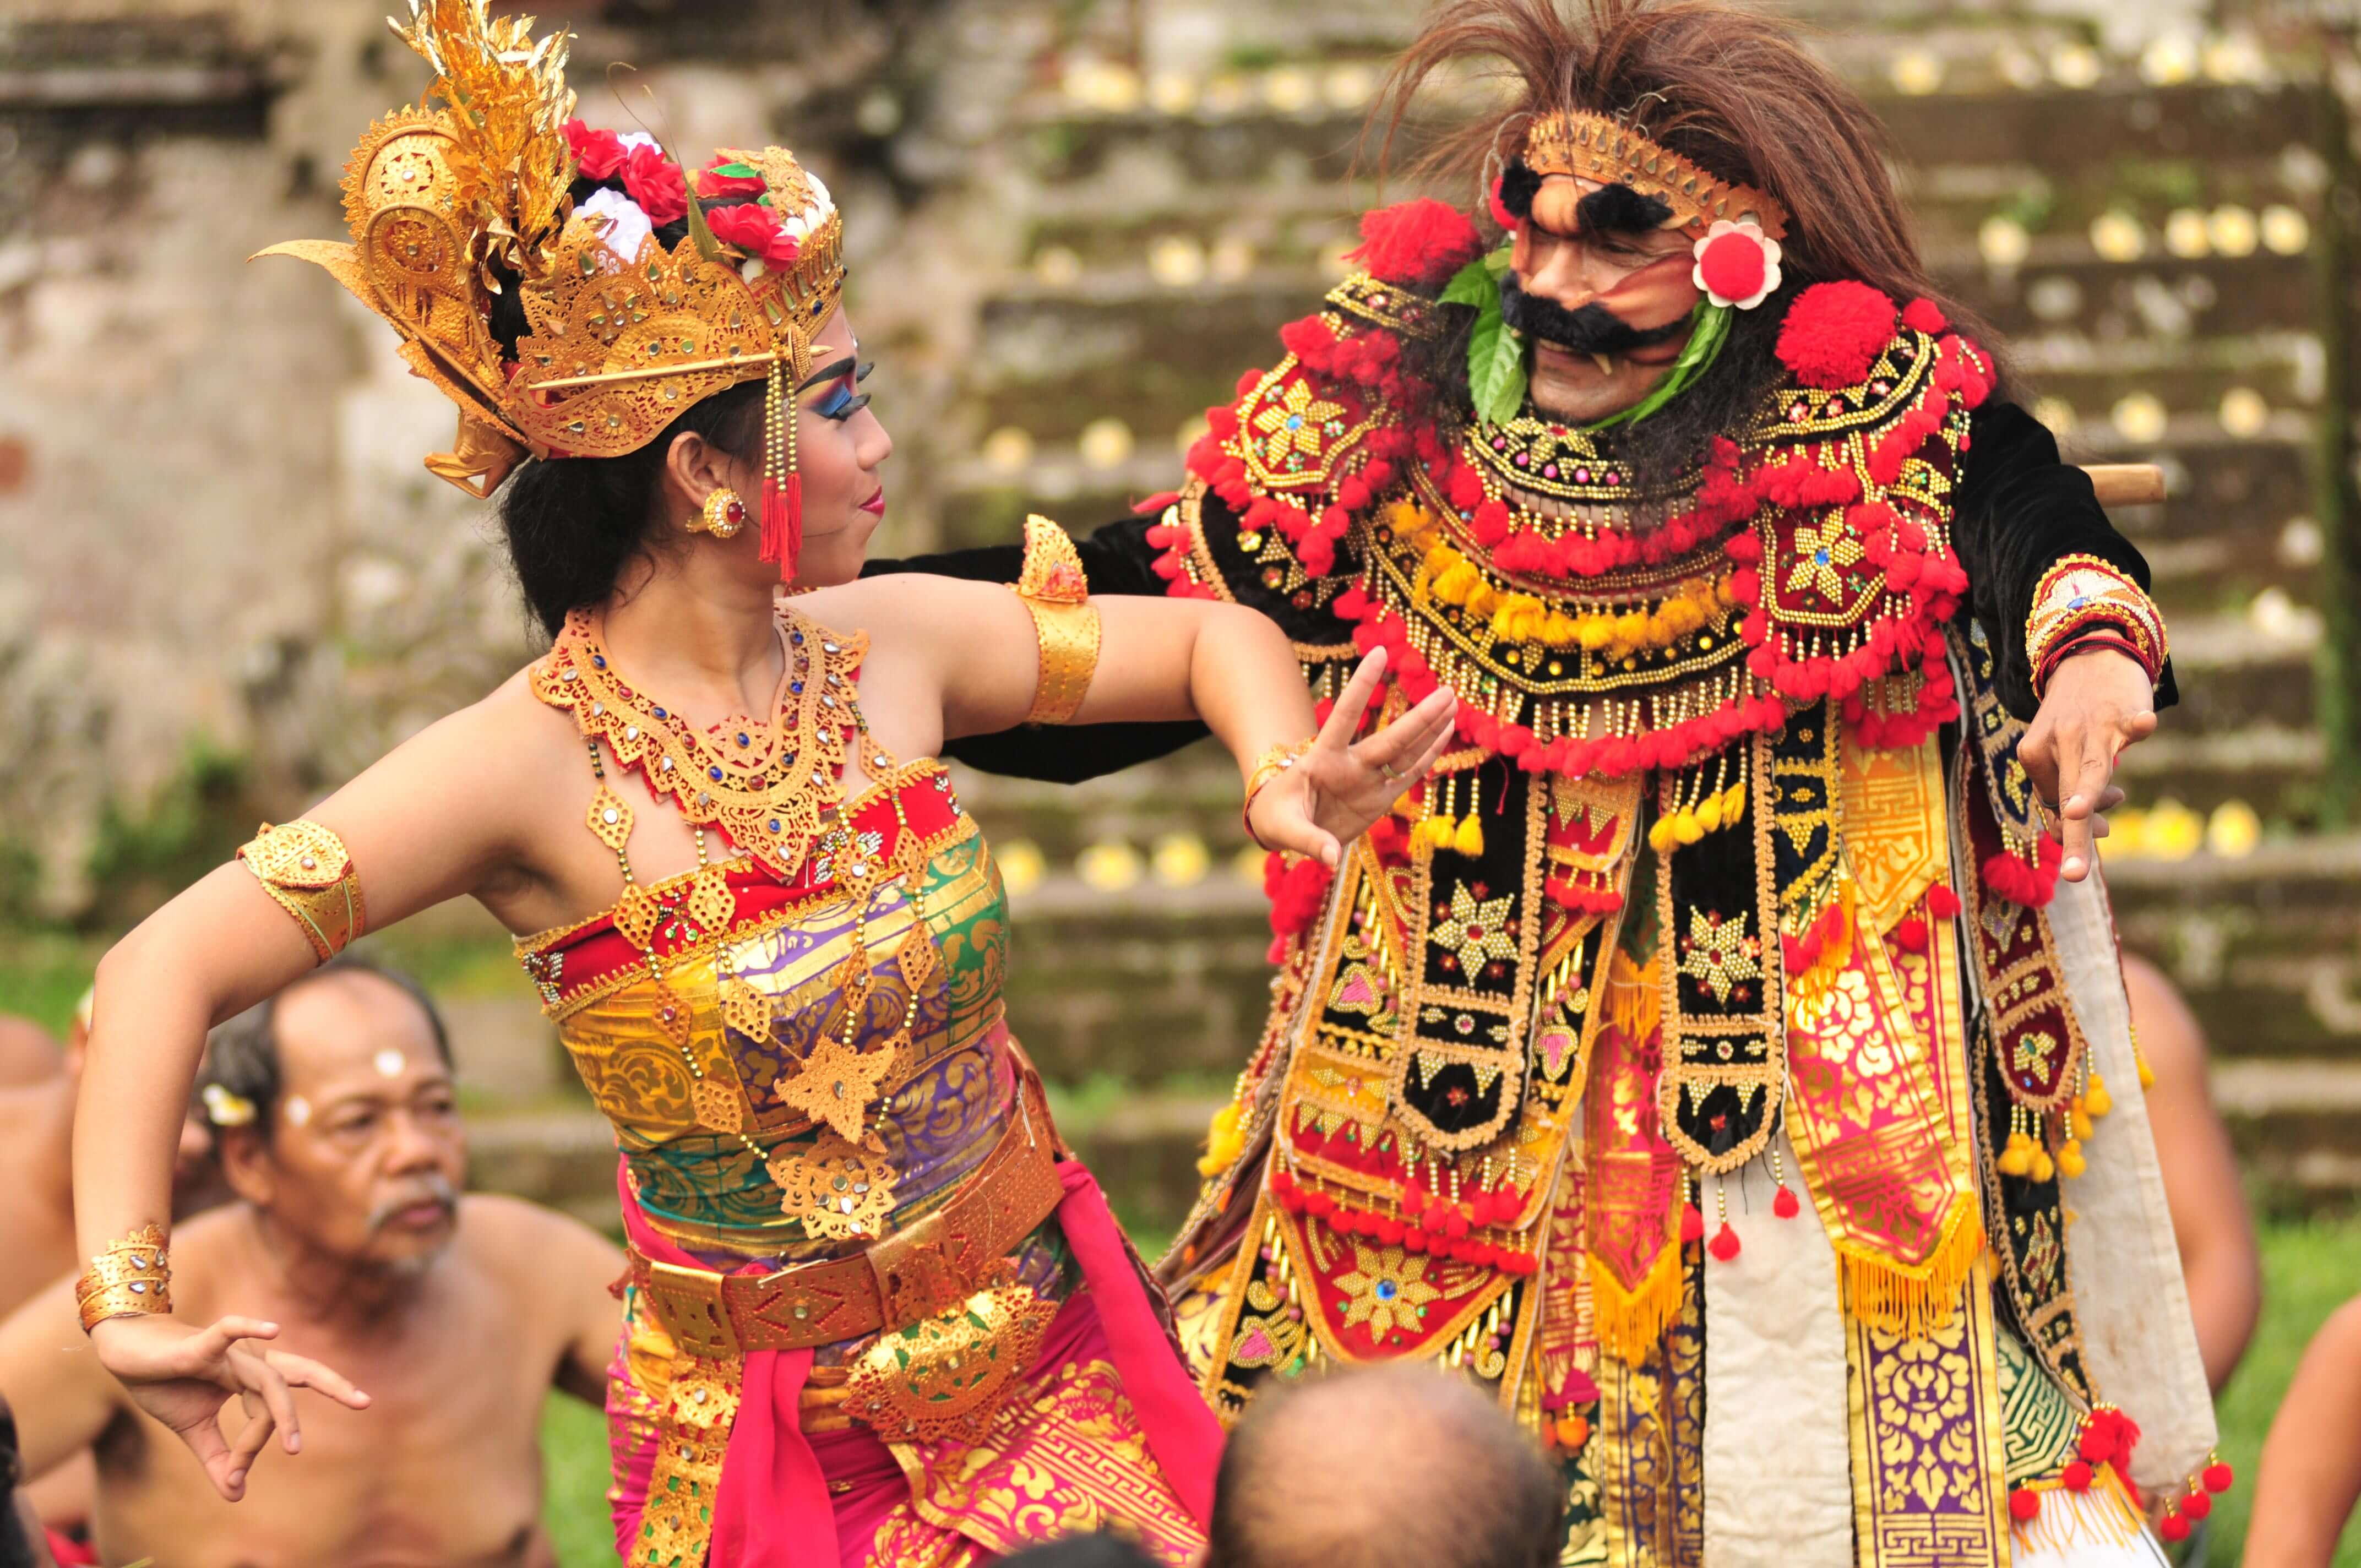 Dancers perform a tradition dance in Bali, Indonesia. Photo: Indonesian Ministry of Tourism